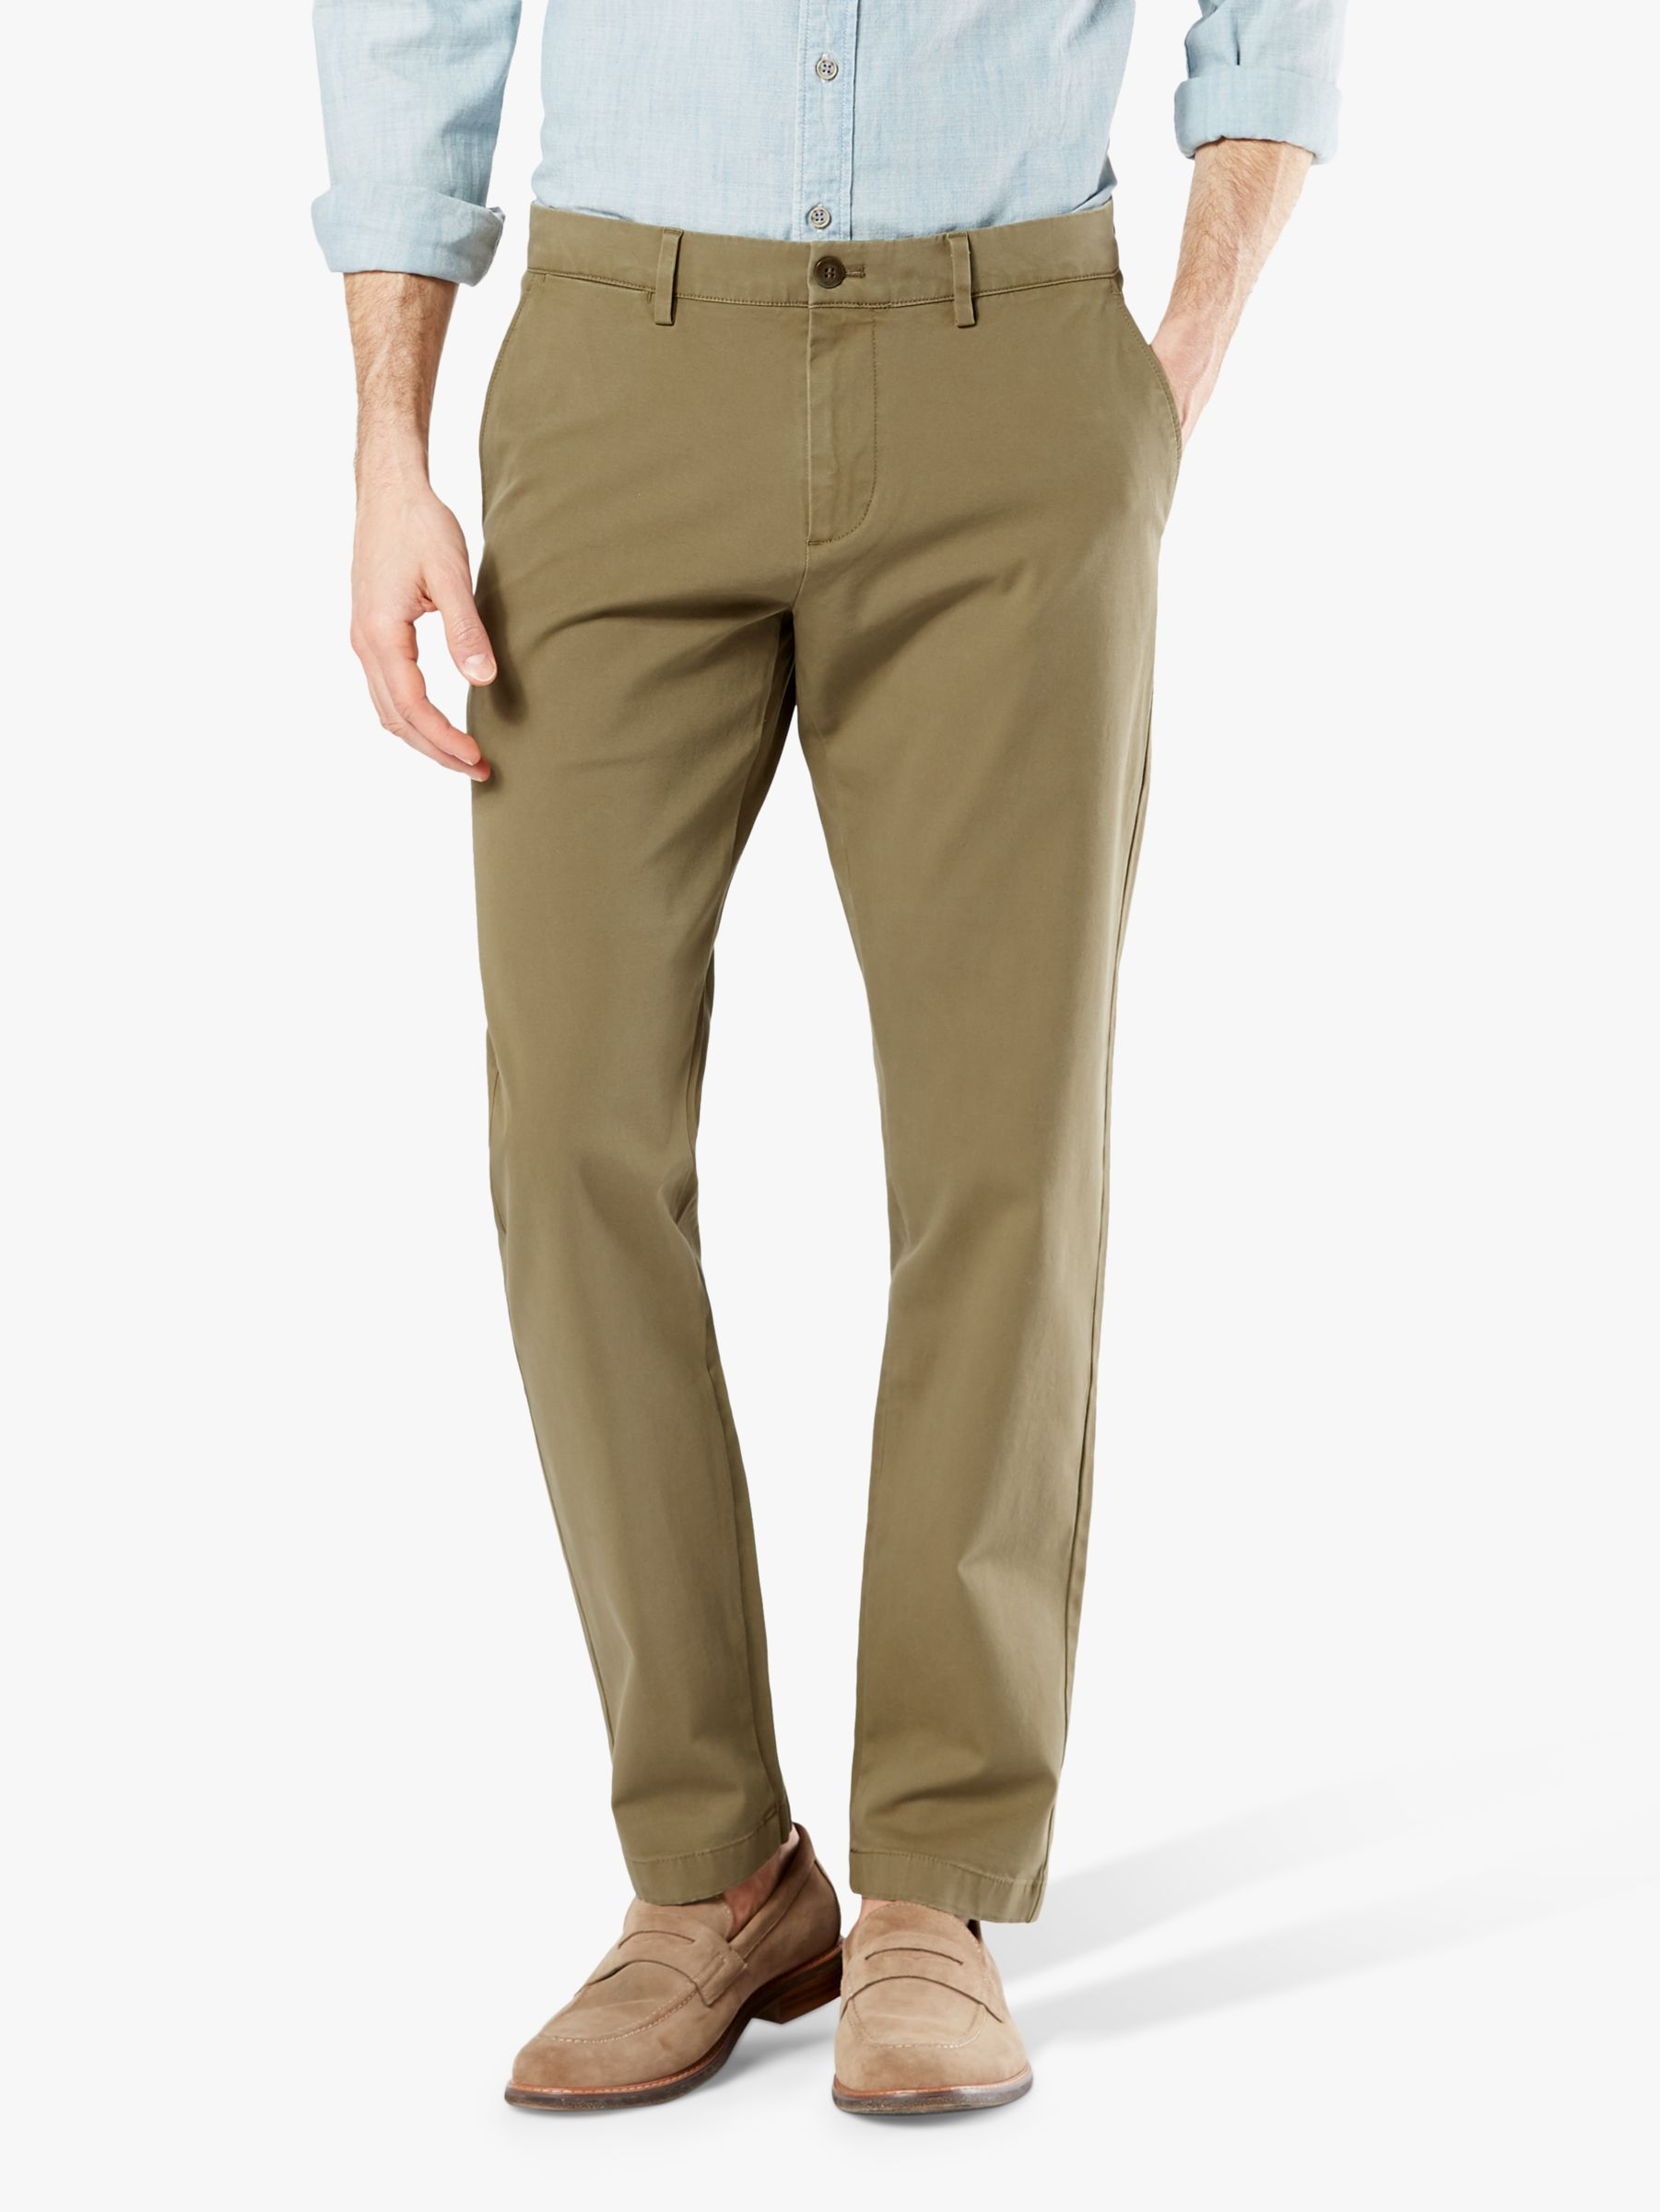 Dockers Mens Slim Fit Trouser with Stretch Waistband Business Casual Pants